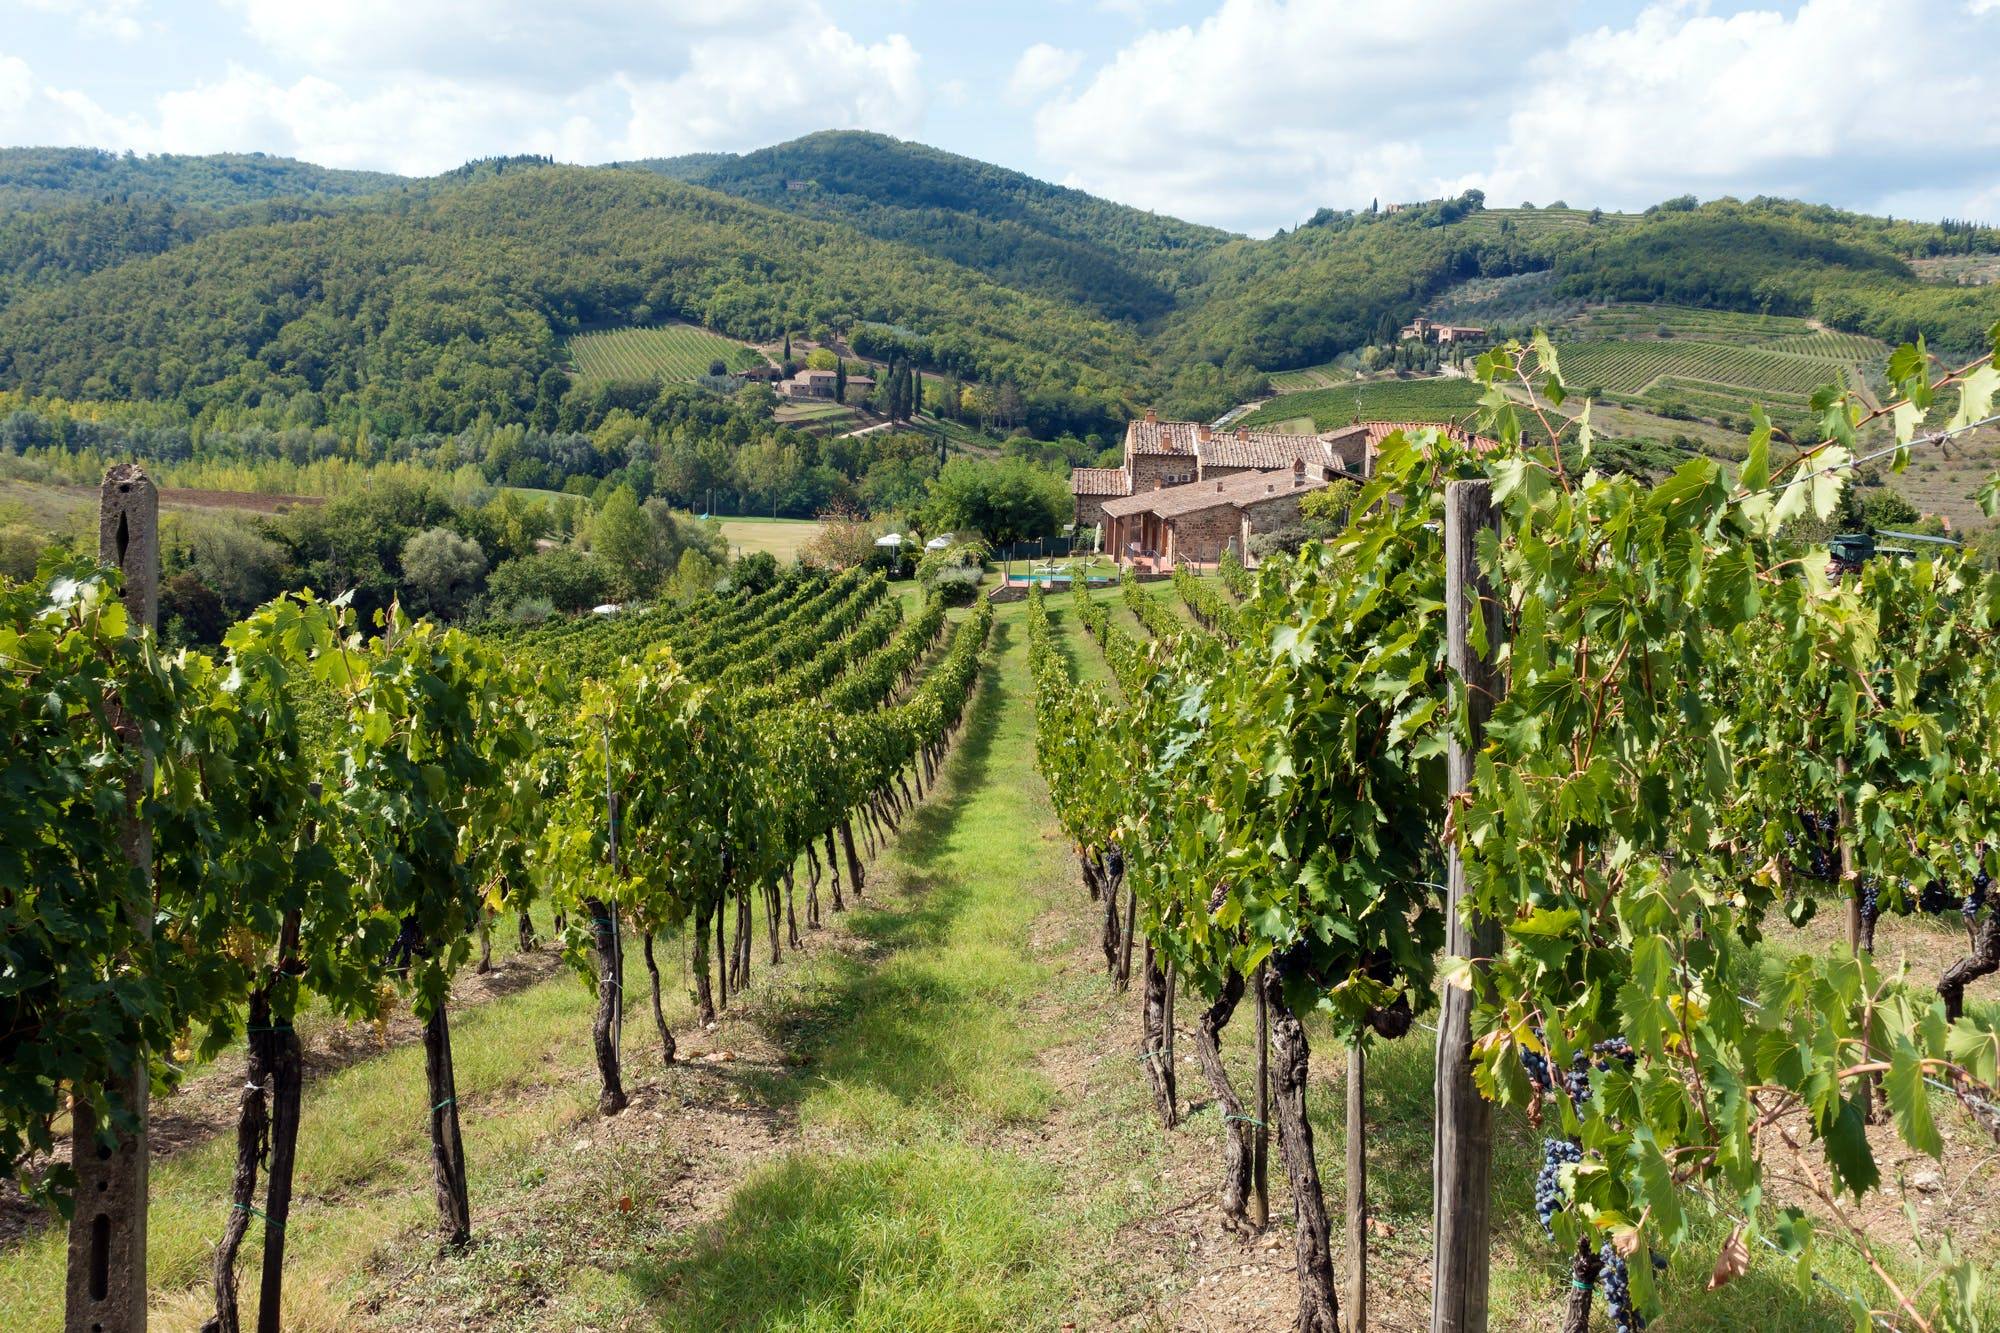 Chianti Region Italy Map.Chianti Italy Travel Guide To Chianti Wine Region In Tuscany Italy